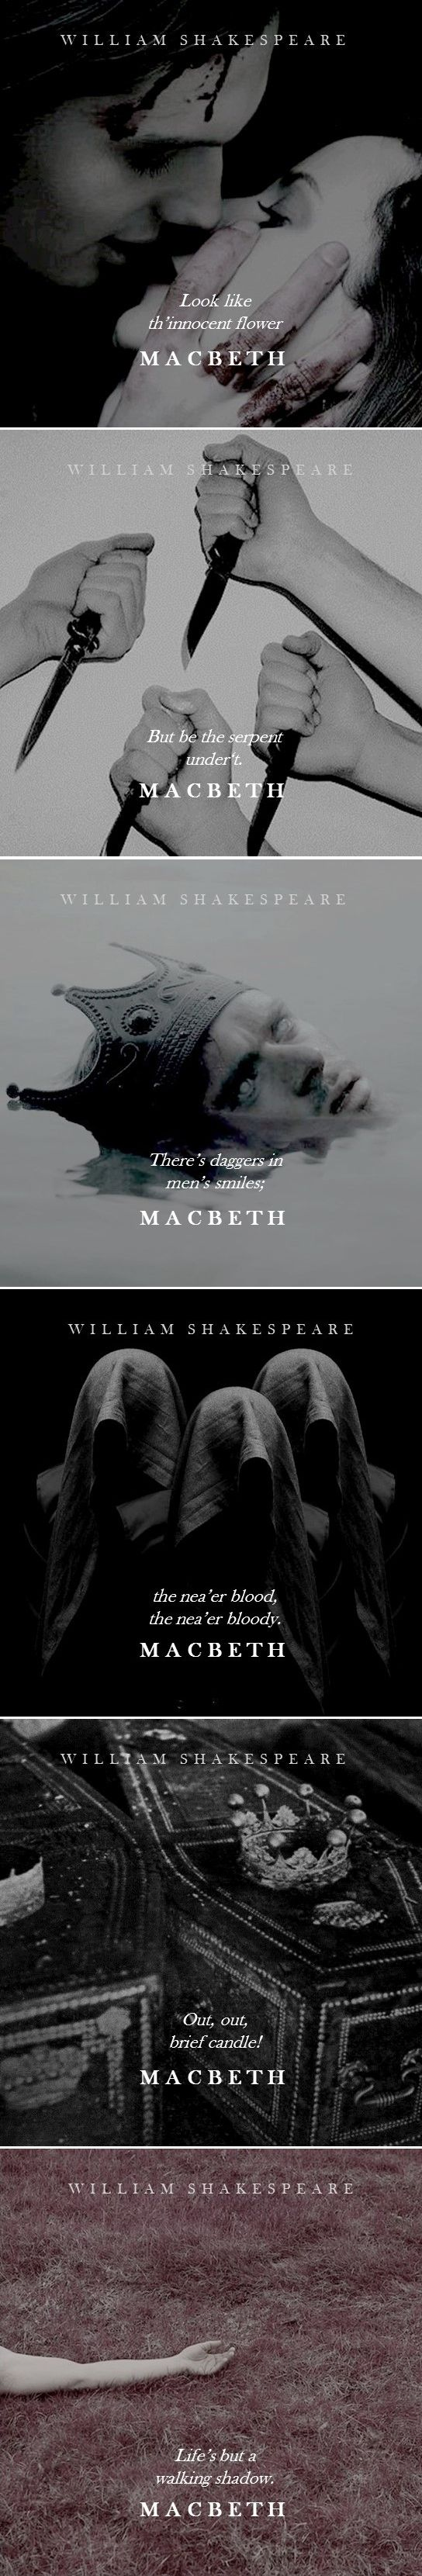 top ideas about macbeth william shakespeare macbeth william shakespeare 1611